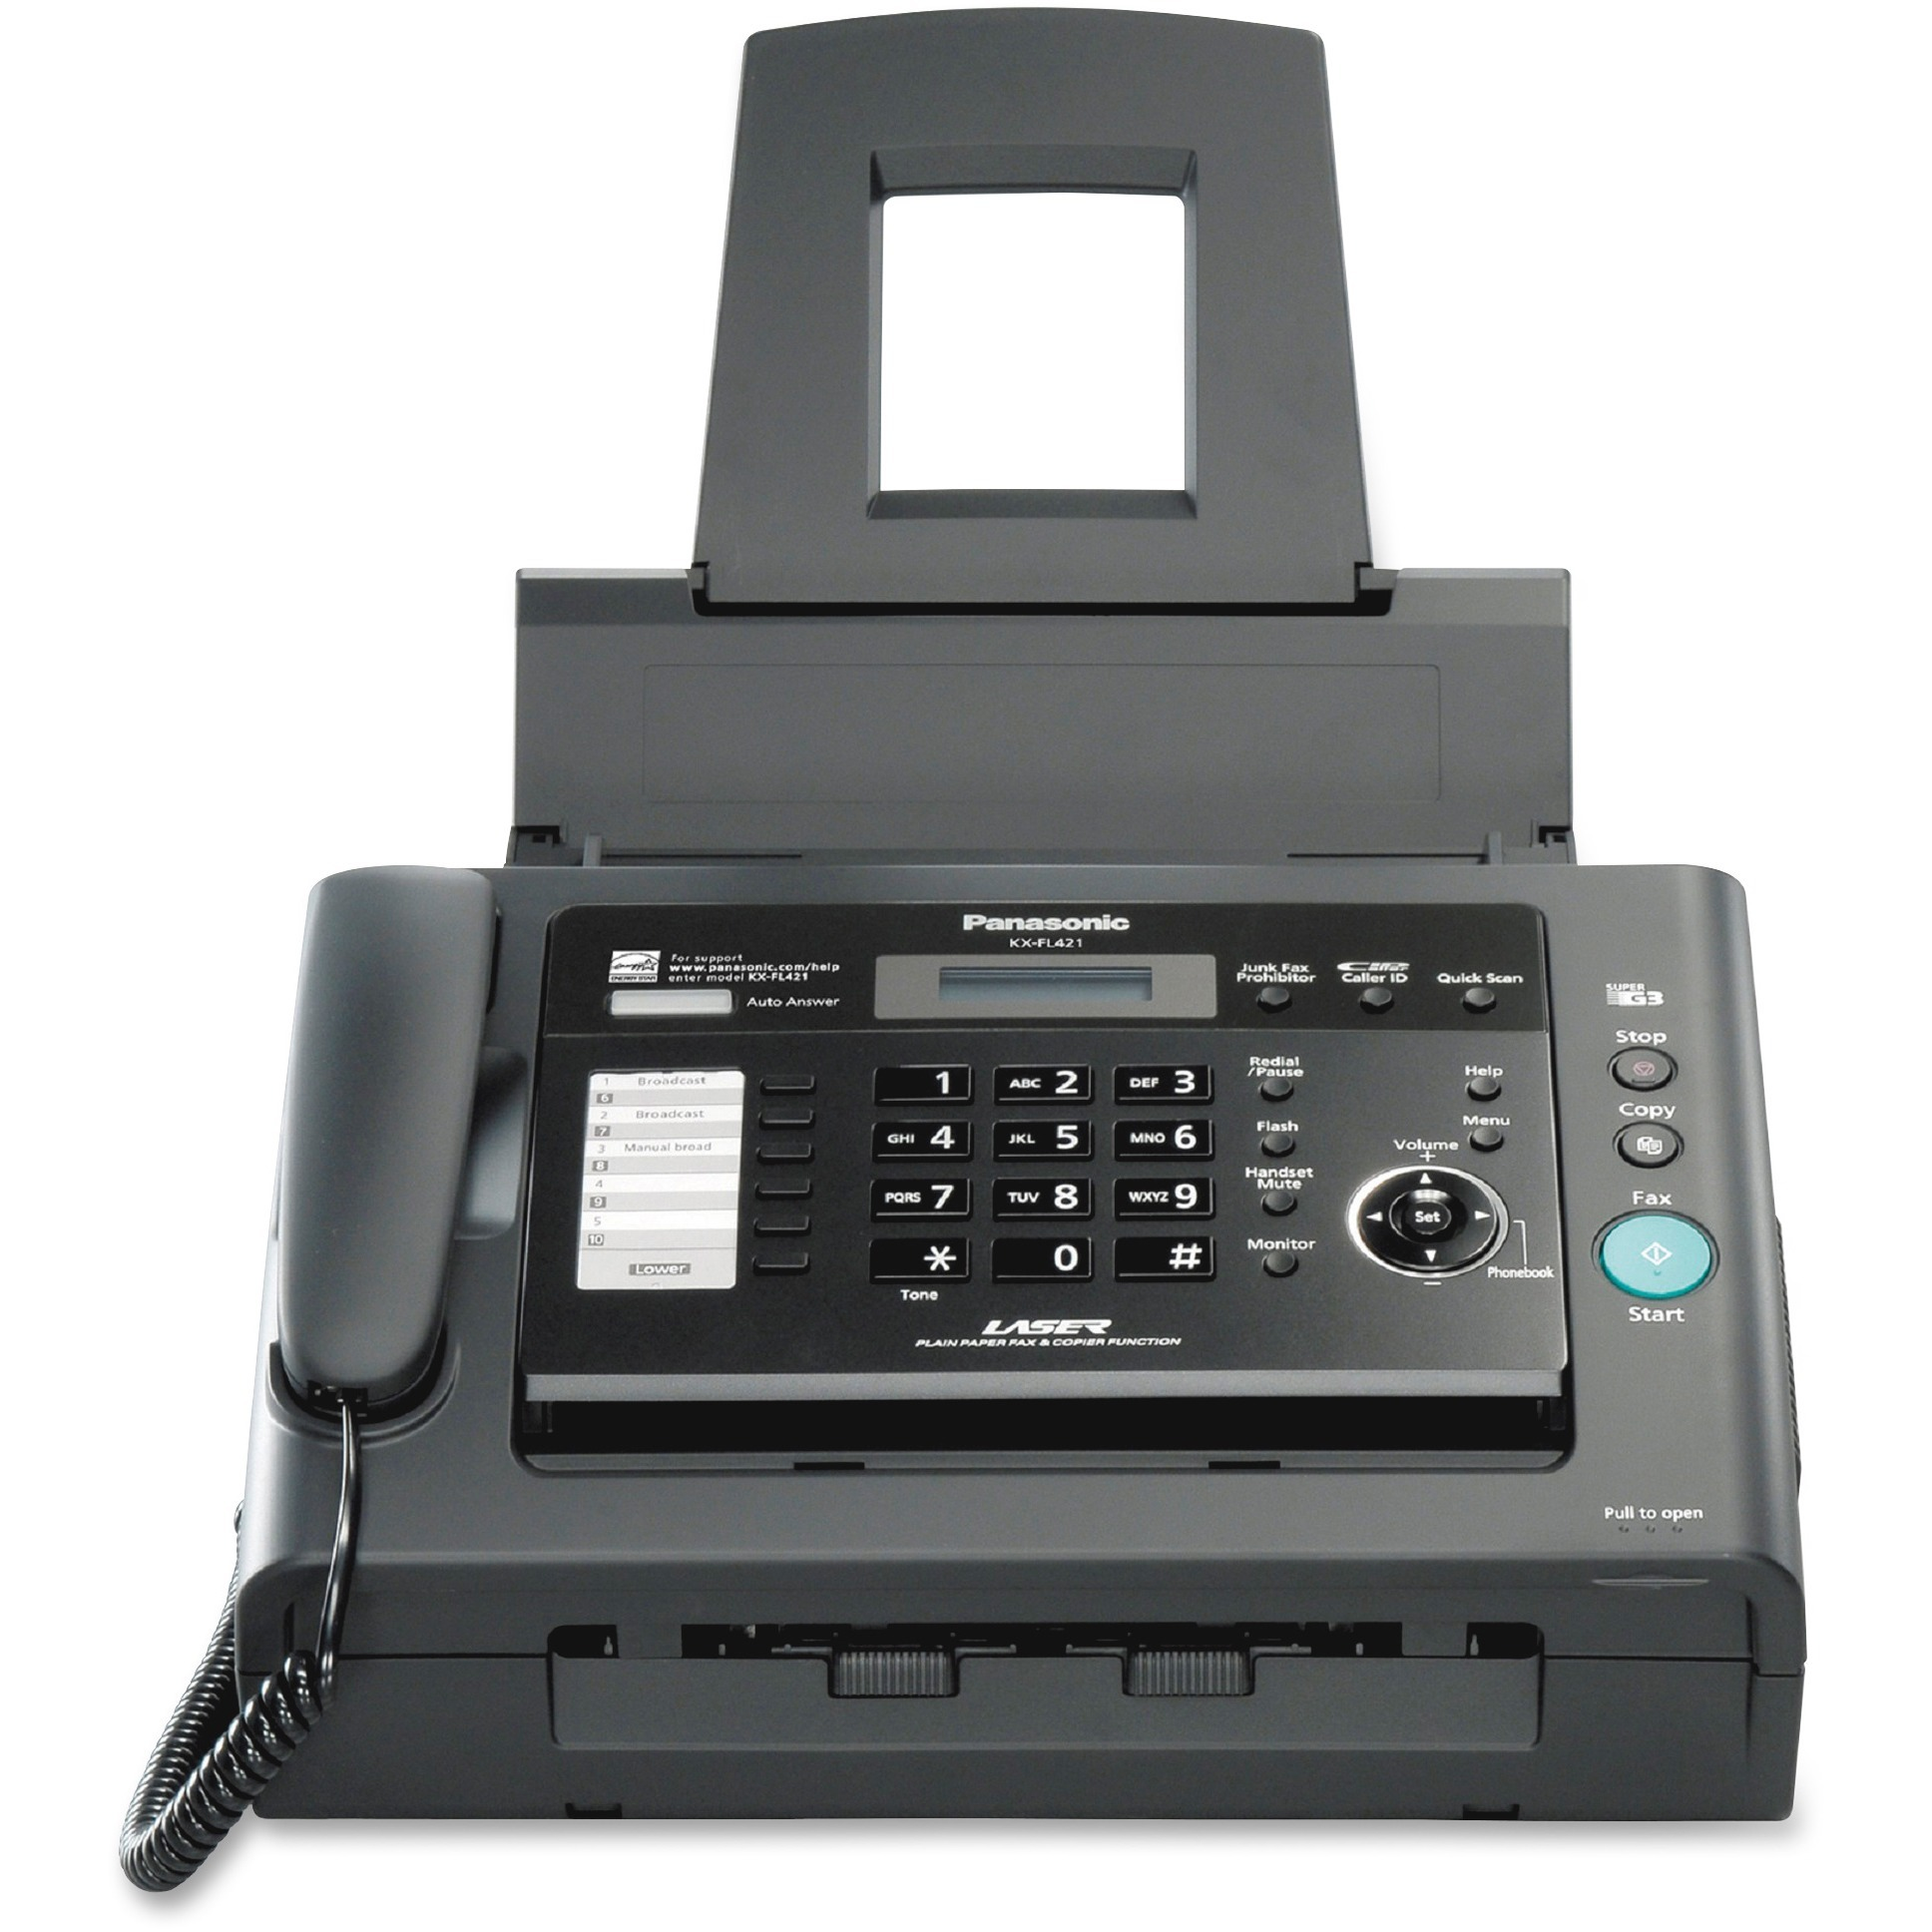 Panasonic, PANKXFL421, KX-FL421 Laser Fax Machine by Panasonic